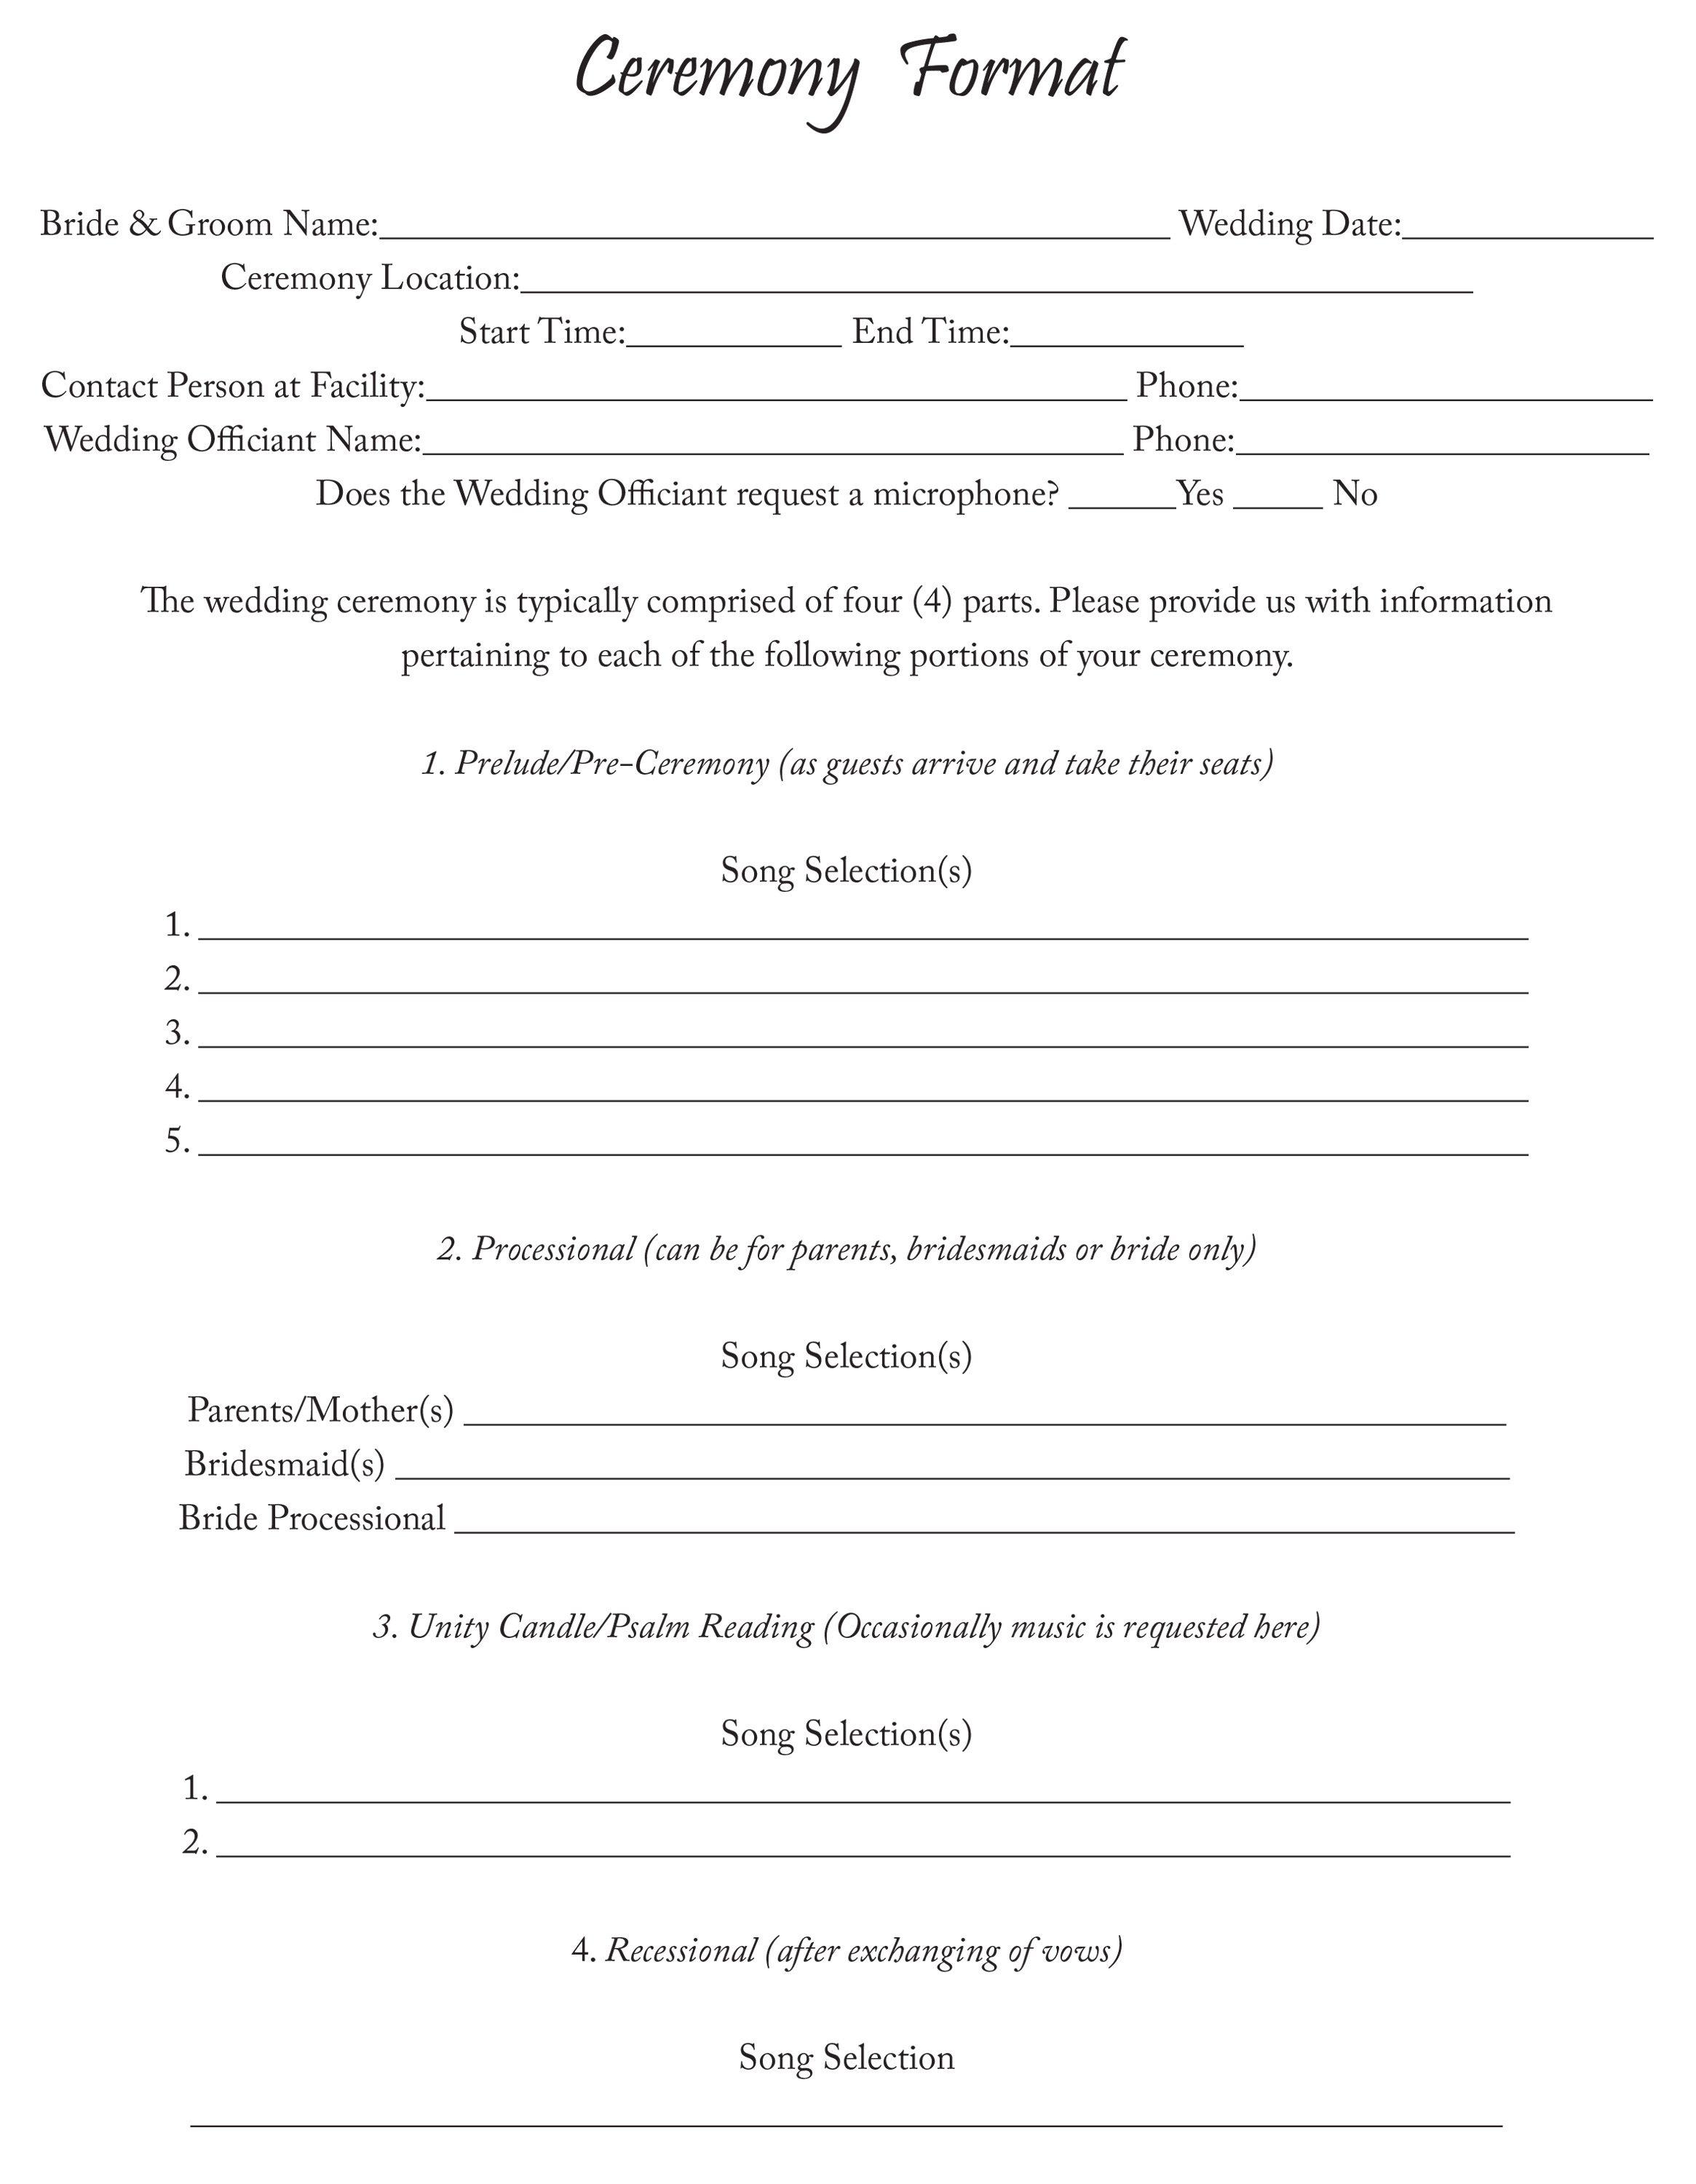 Ceremony Format Sheet Sarasota And Tampa Bay Events Dj